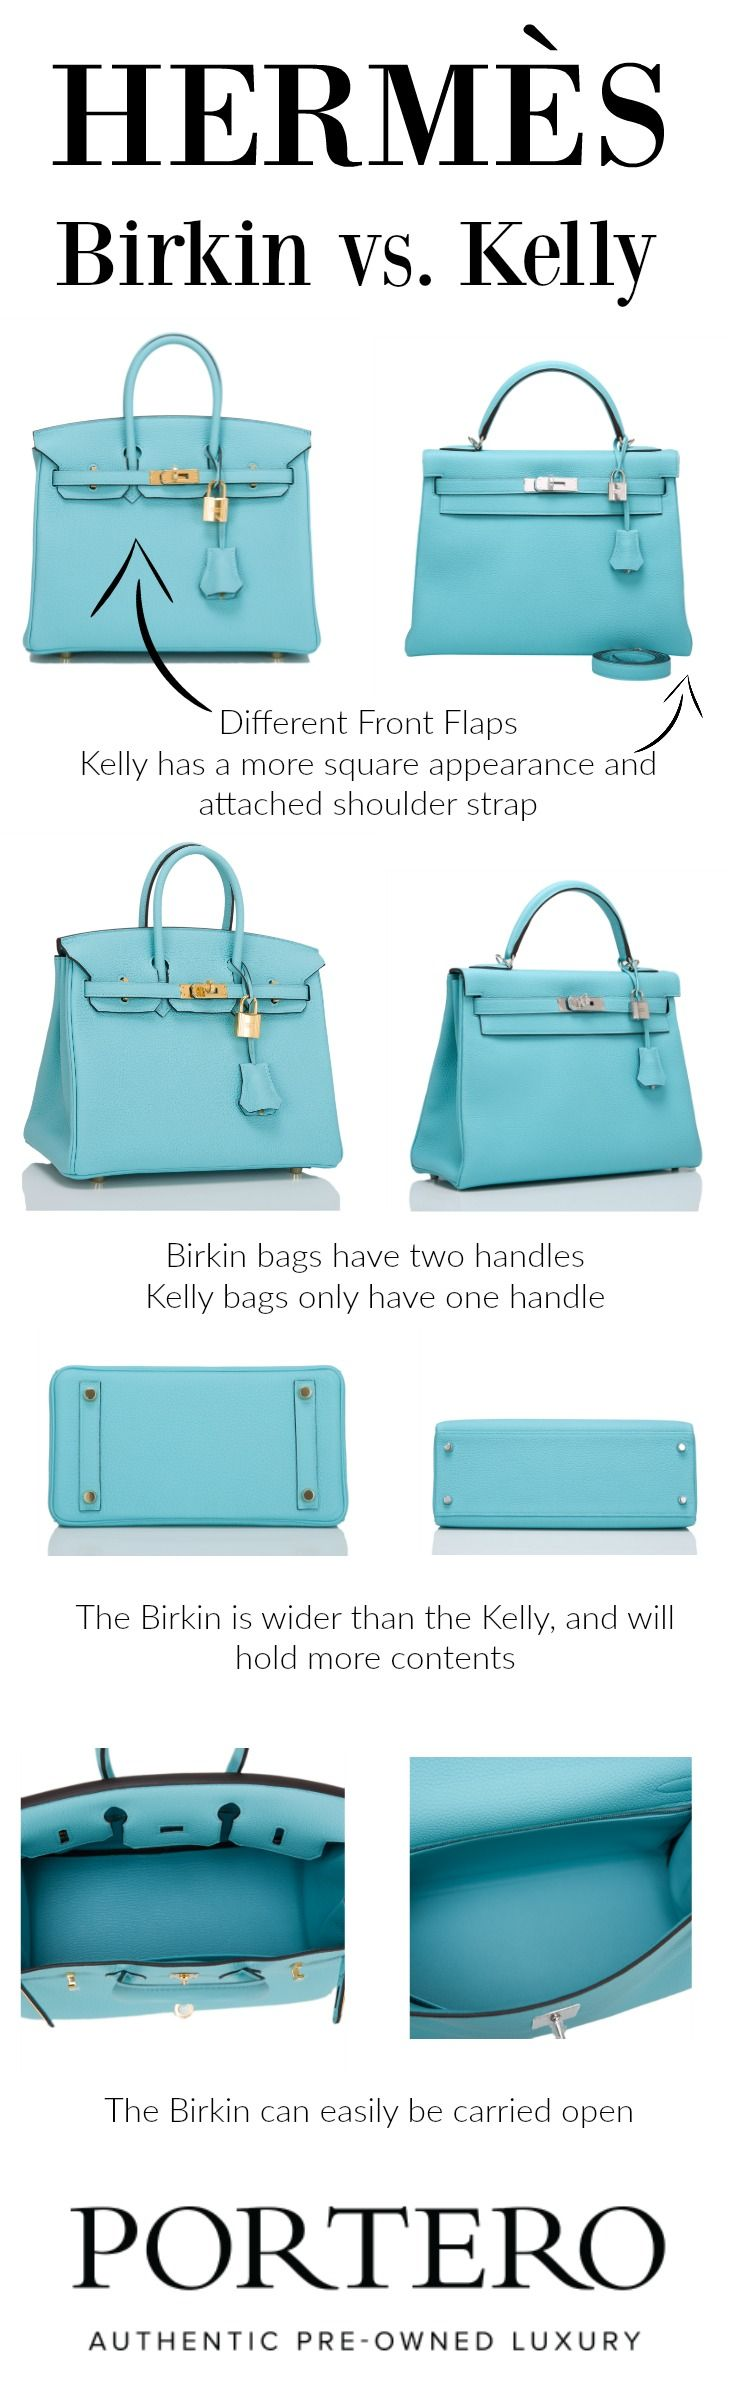 Do you know the difference between a Birkin and a Kelly?